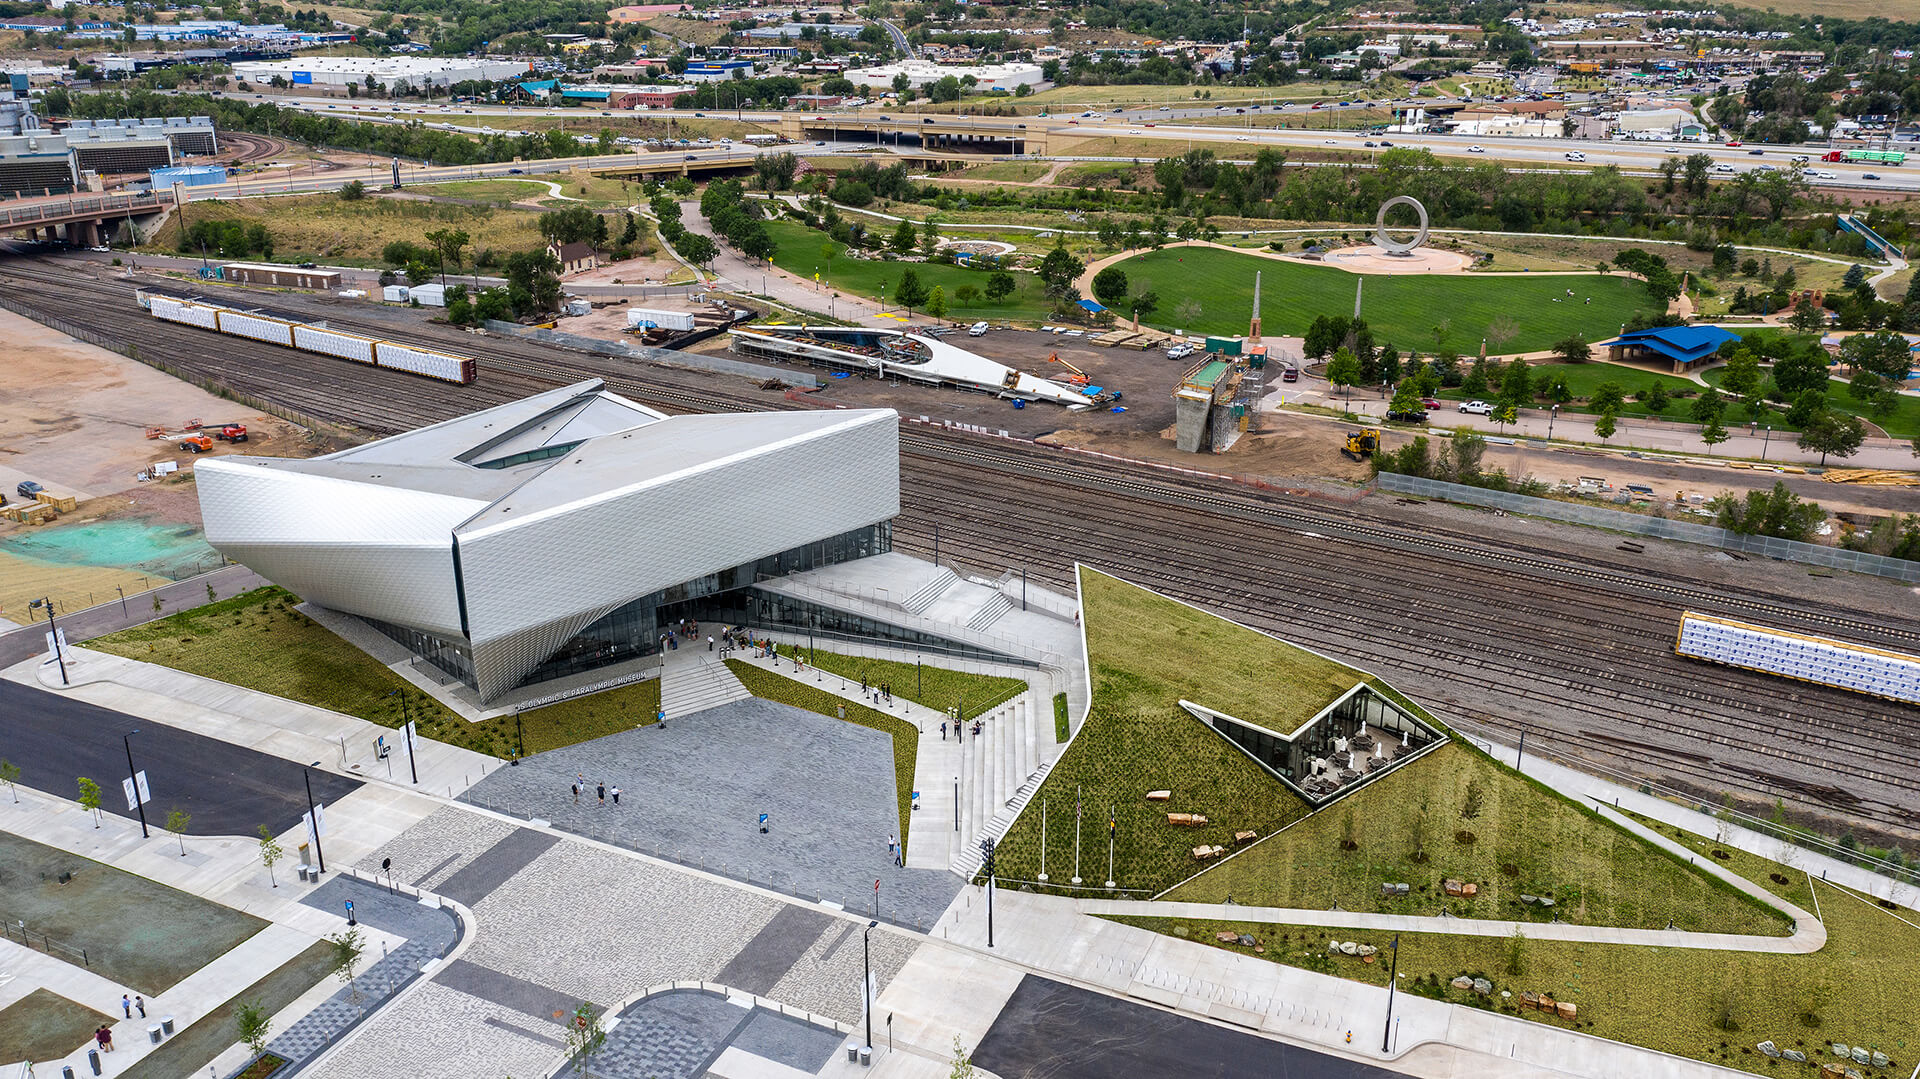 Bird's eye view of the USOP Museum, with the Southwest Pedestrian Downtown Bridge to be connected to the main complex | United States Olympic and Paralympic Museum | Diller Scofidio + Renfro | STIRworld